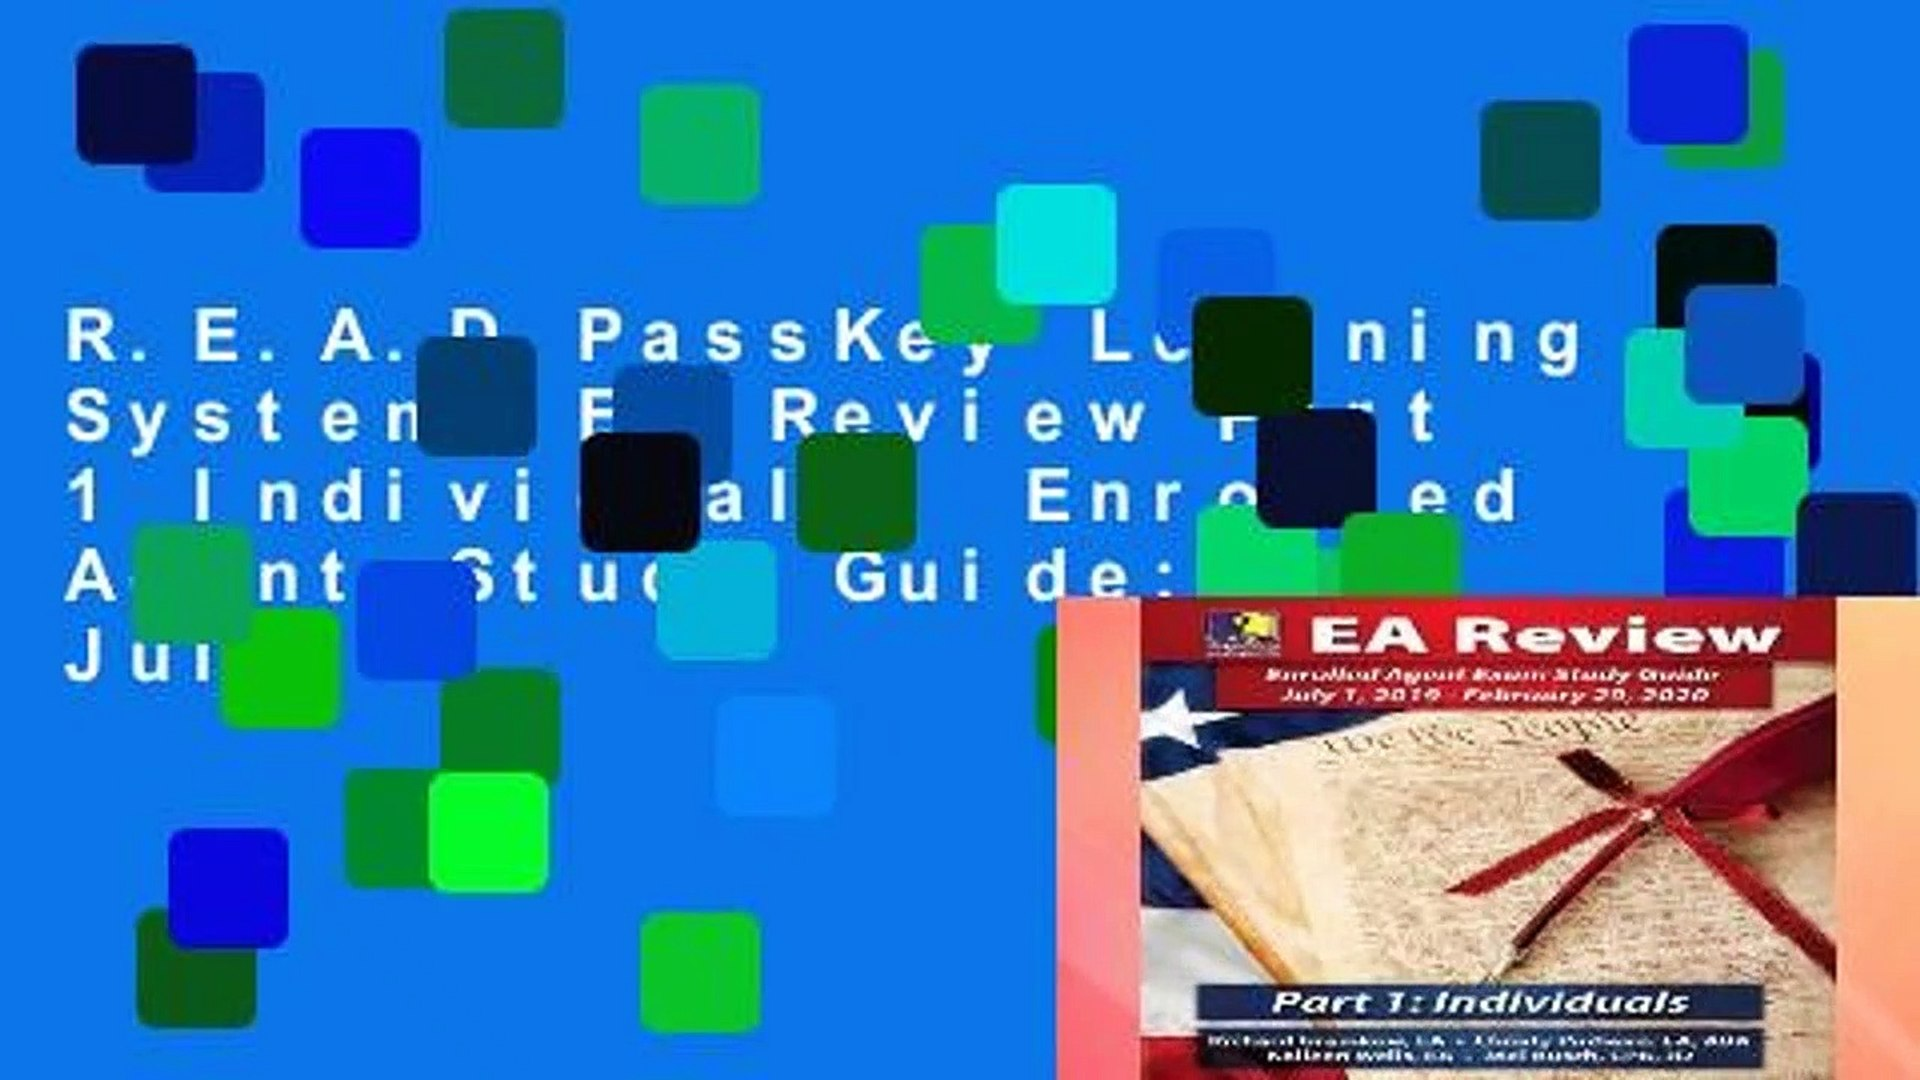 R.E.A.D PassKey Learning Systems EA Review Part 1 Individuals; Enrolled Agent Study Guide: July 1,